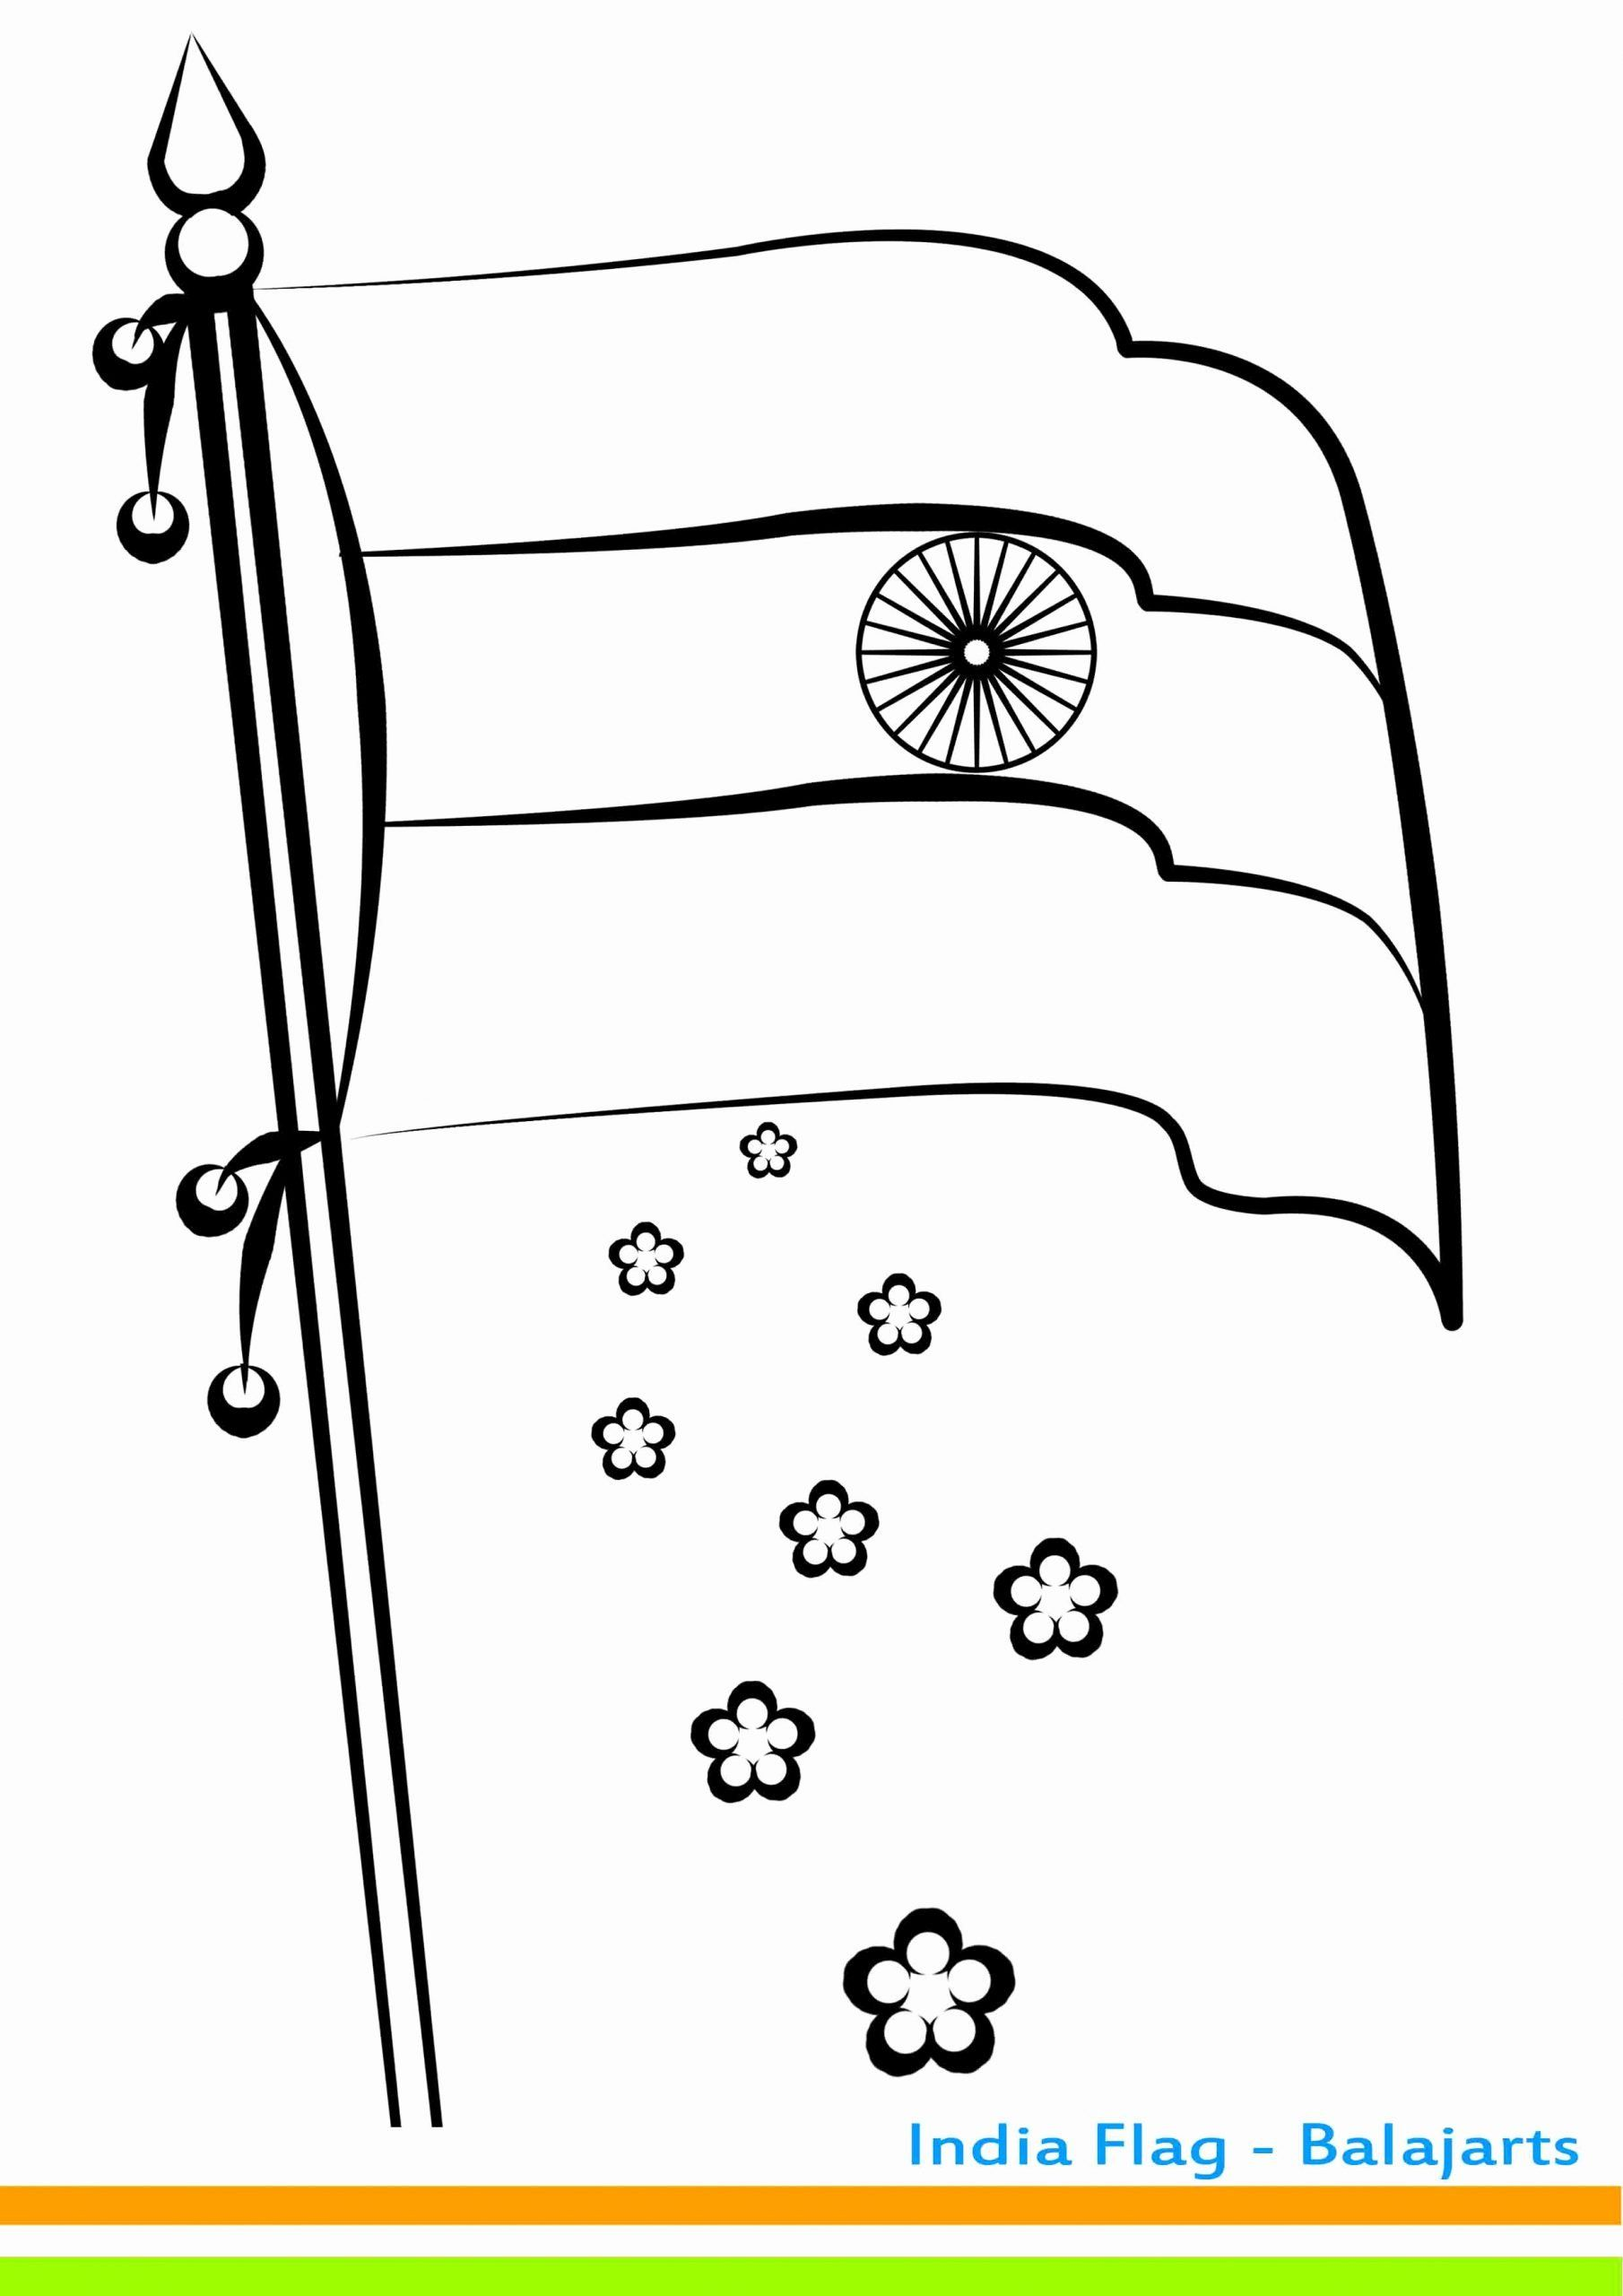 India Flag Coloring Page Luxury Indian National Flag Clipart Black And White India Flag Flag Coloring Pages Coloring Pages